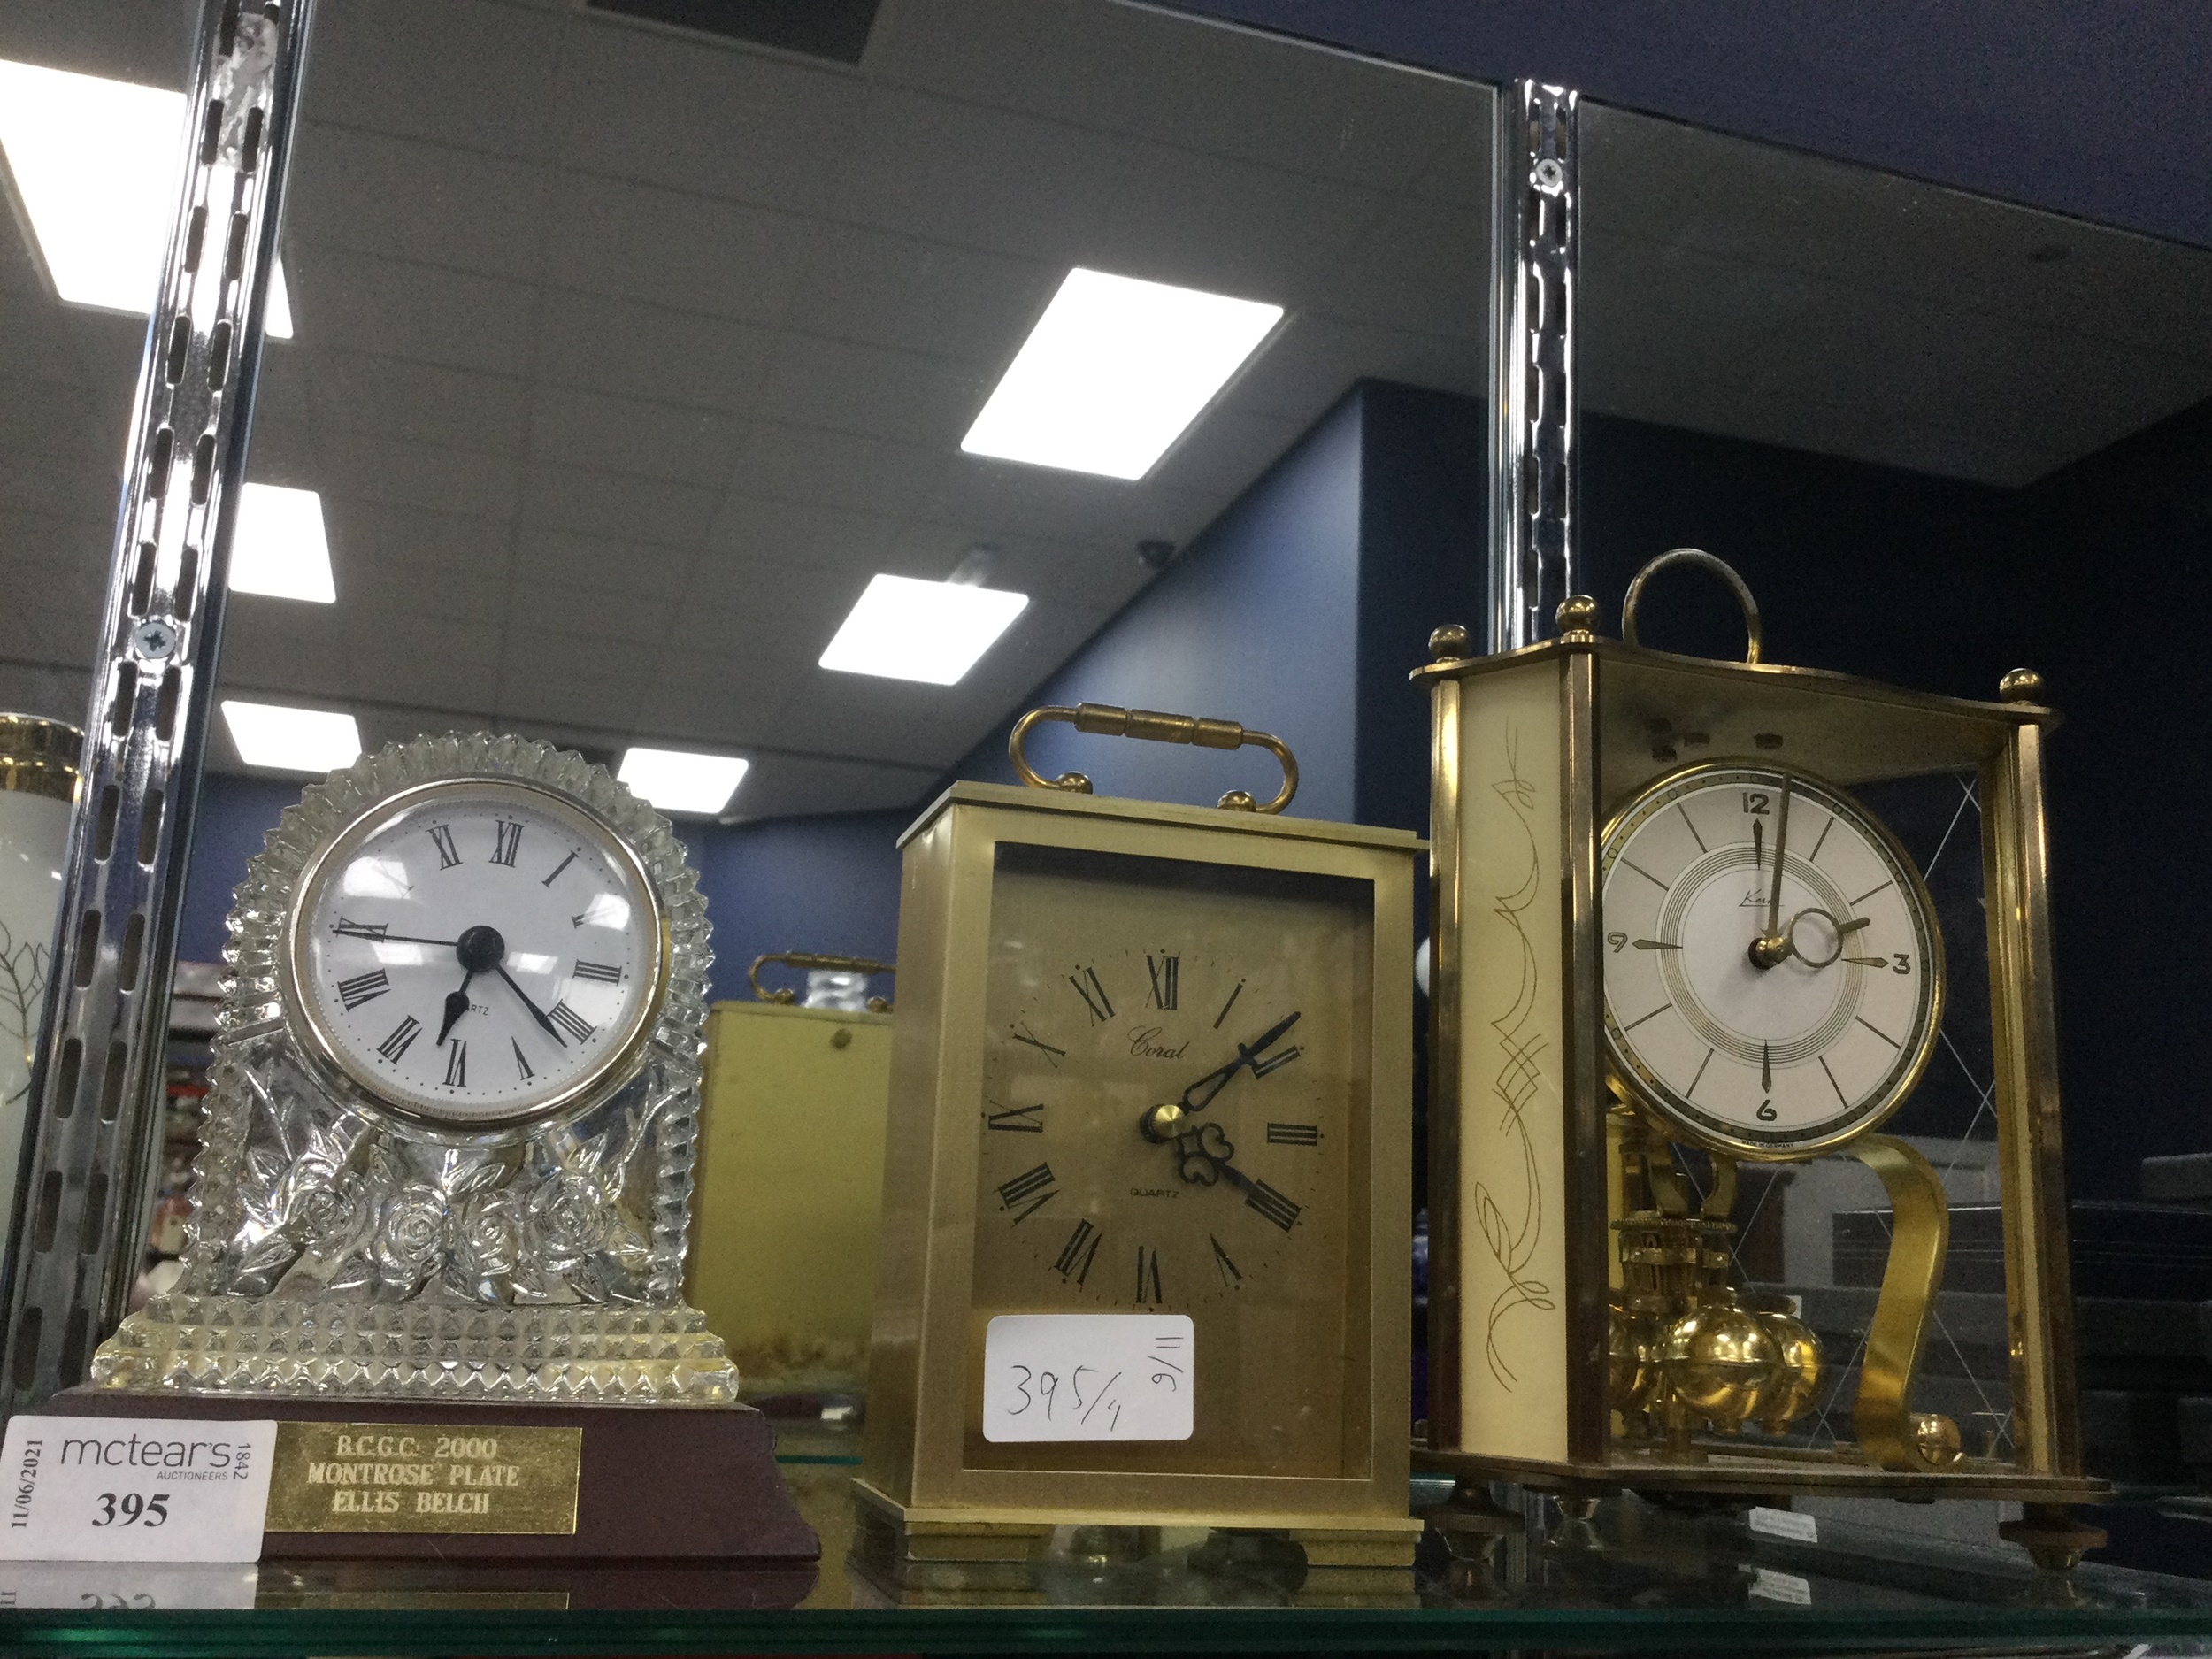 A CUT GLASS MANTLE CLOCK, A CARRIAGE CLOCK AND AN ANNIVERSARY CLOCK